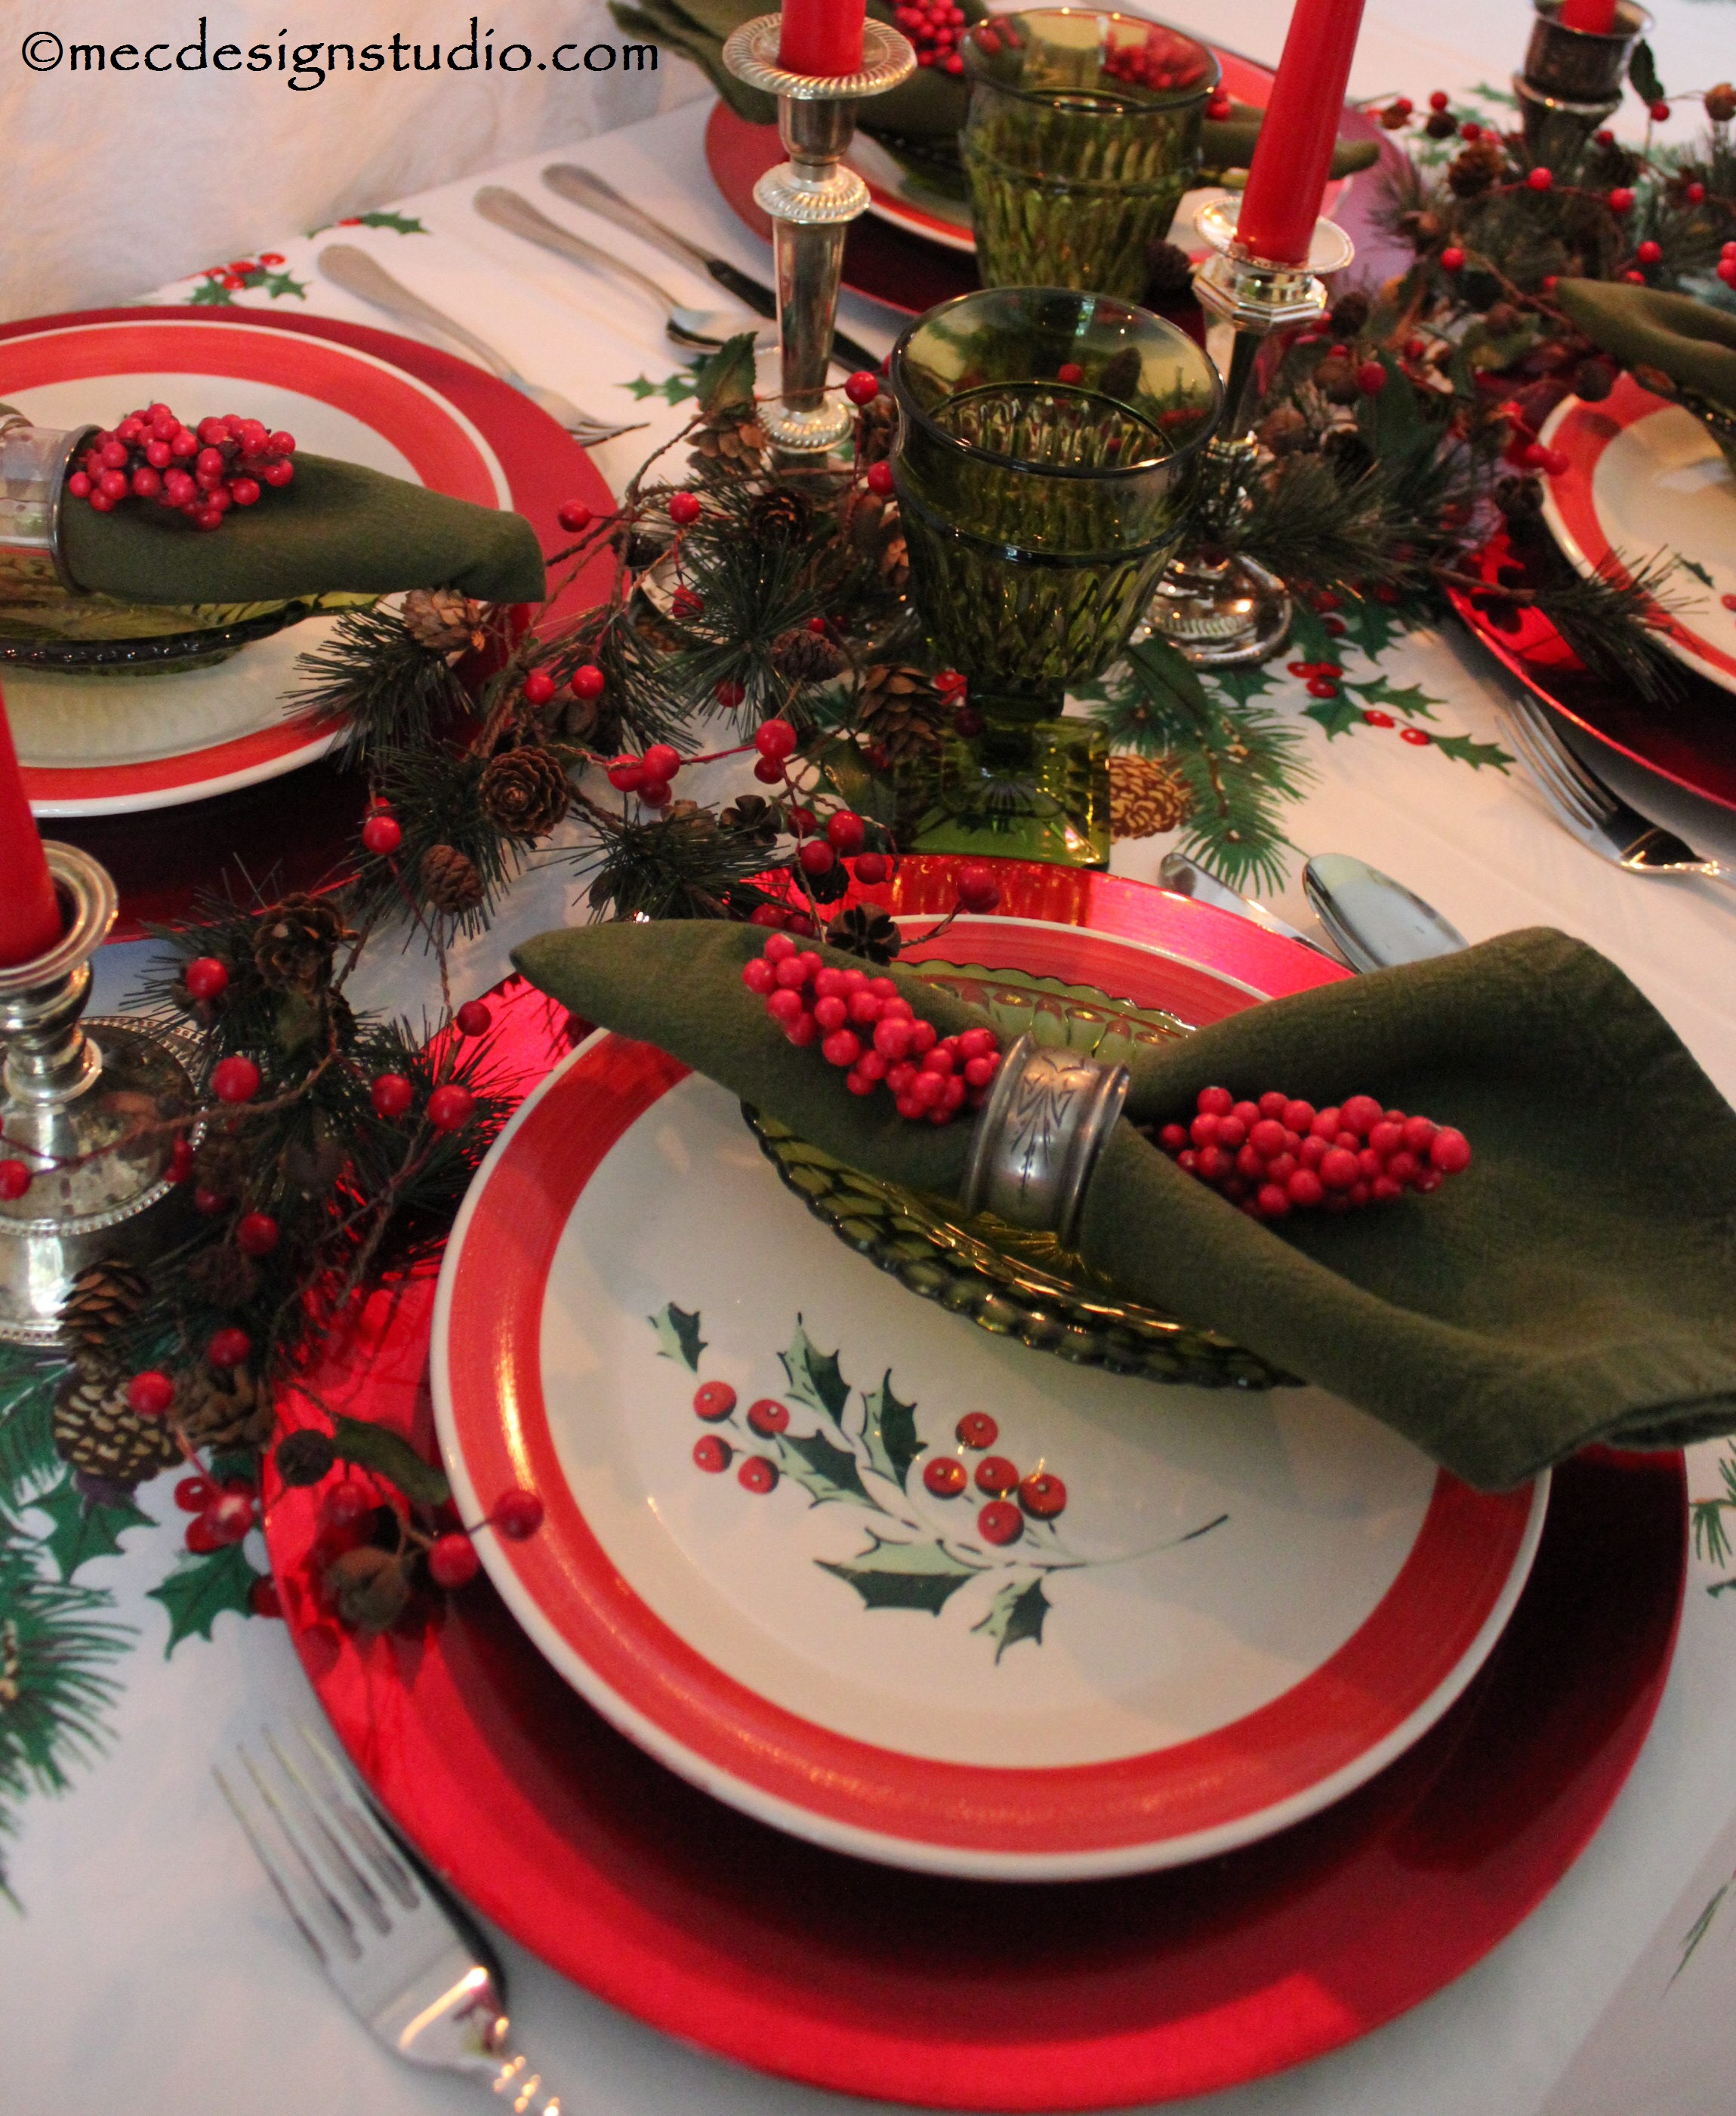 Retro Chic Christmas Tablesetting